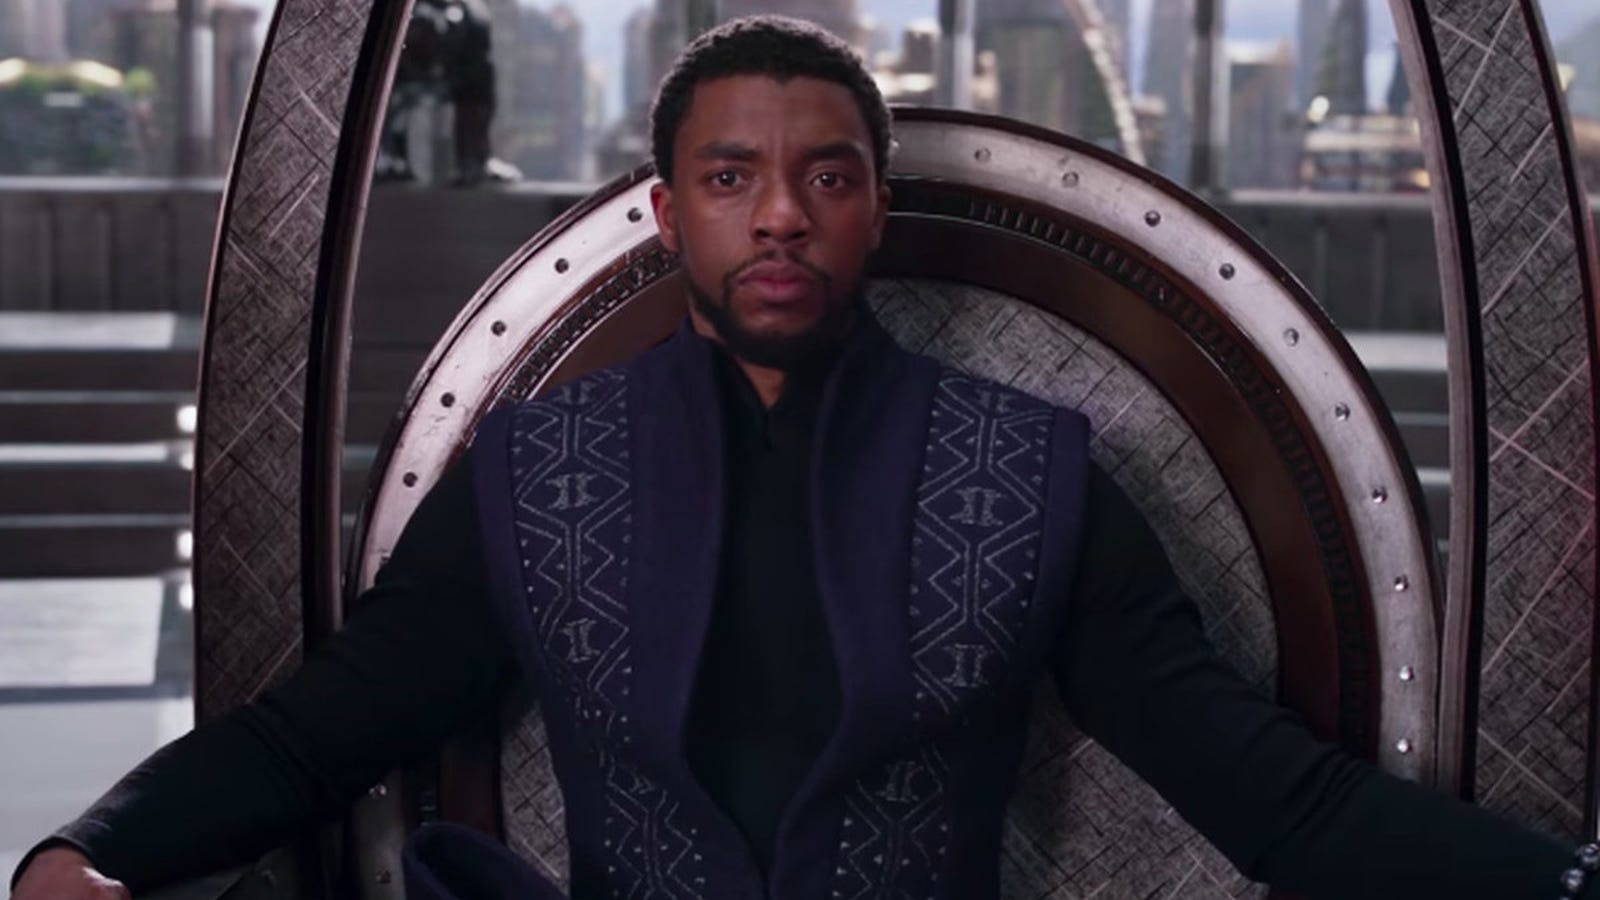 The King of Wakanda Holds the Oscars' First Best Picture Nod for a Superhero Film